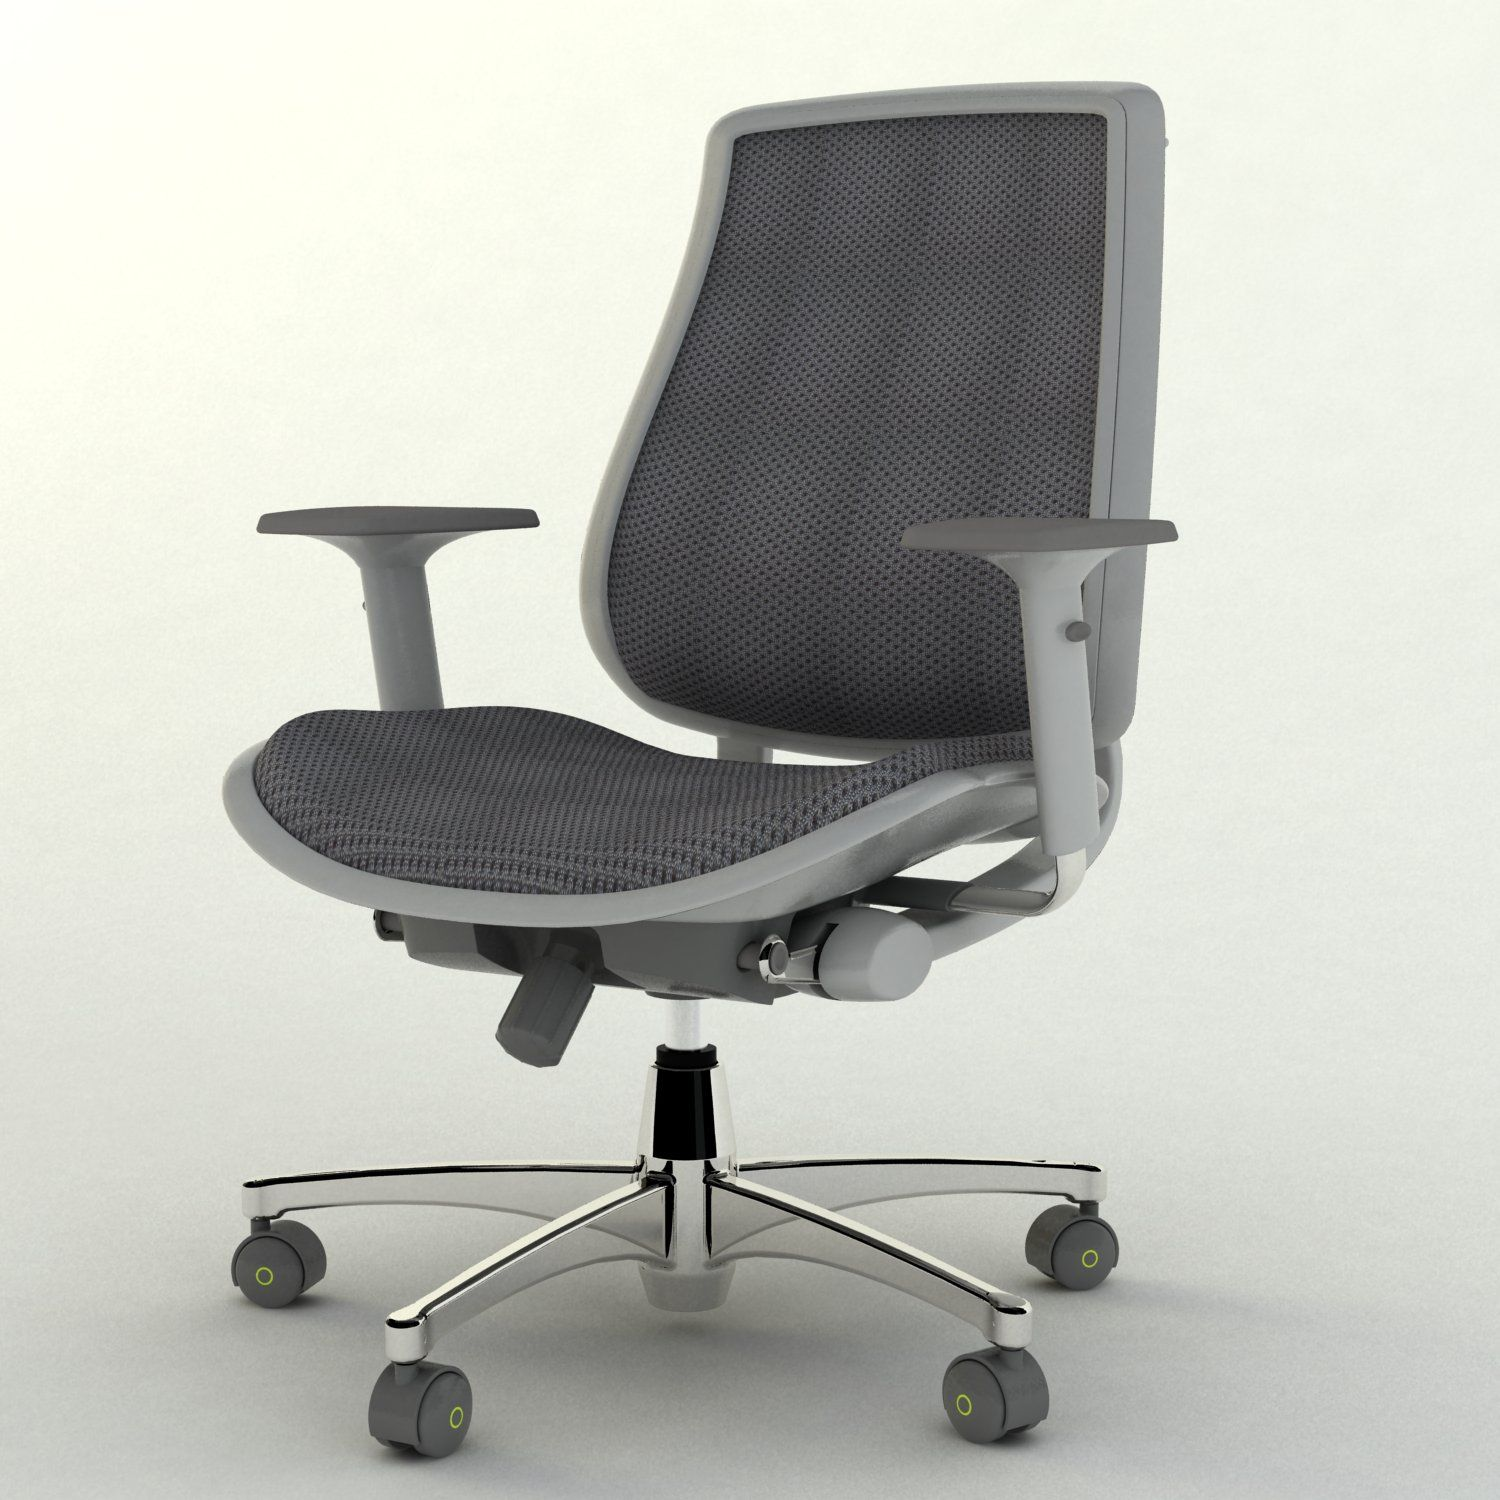 comfortable office chair office. Explore Comfortable Office Chair, Design Offices, And More! Chair R